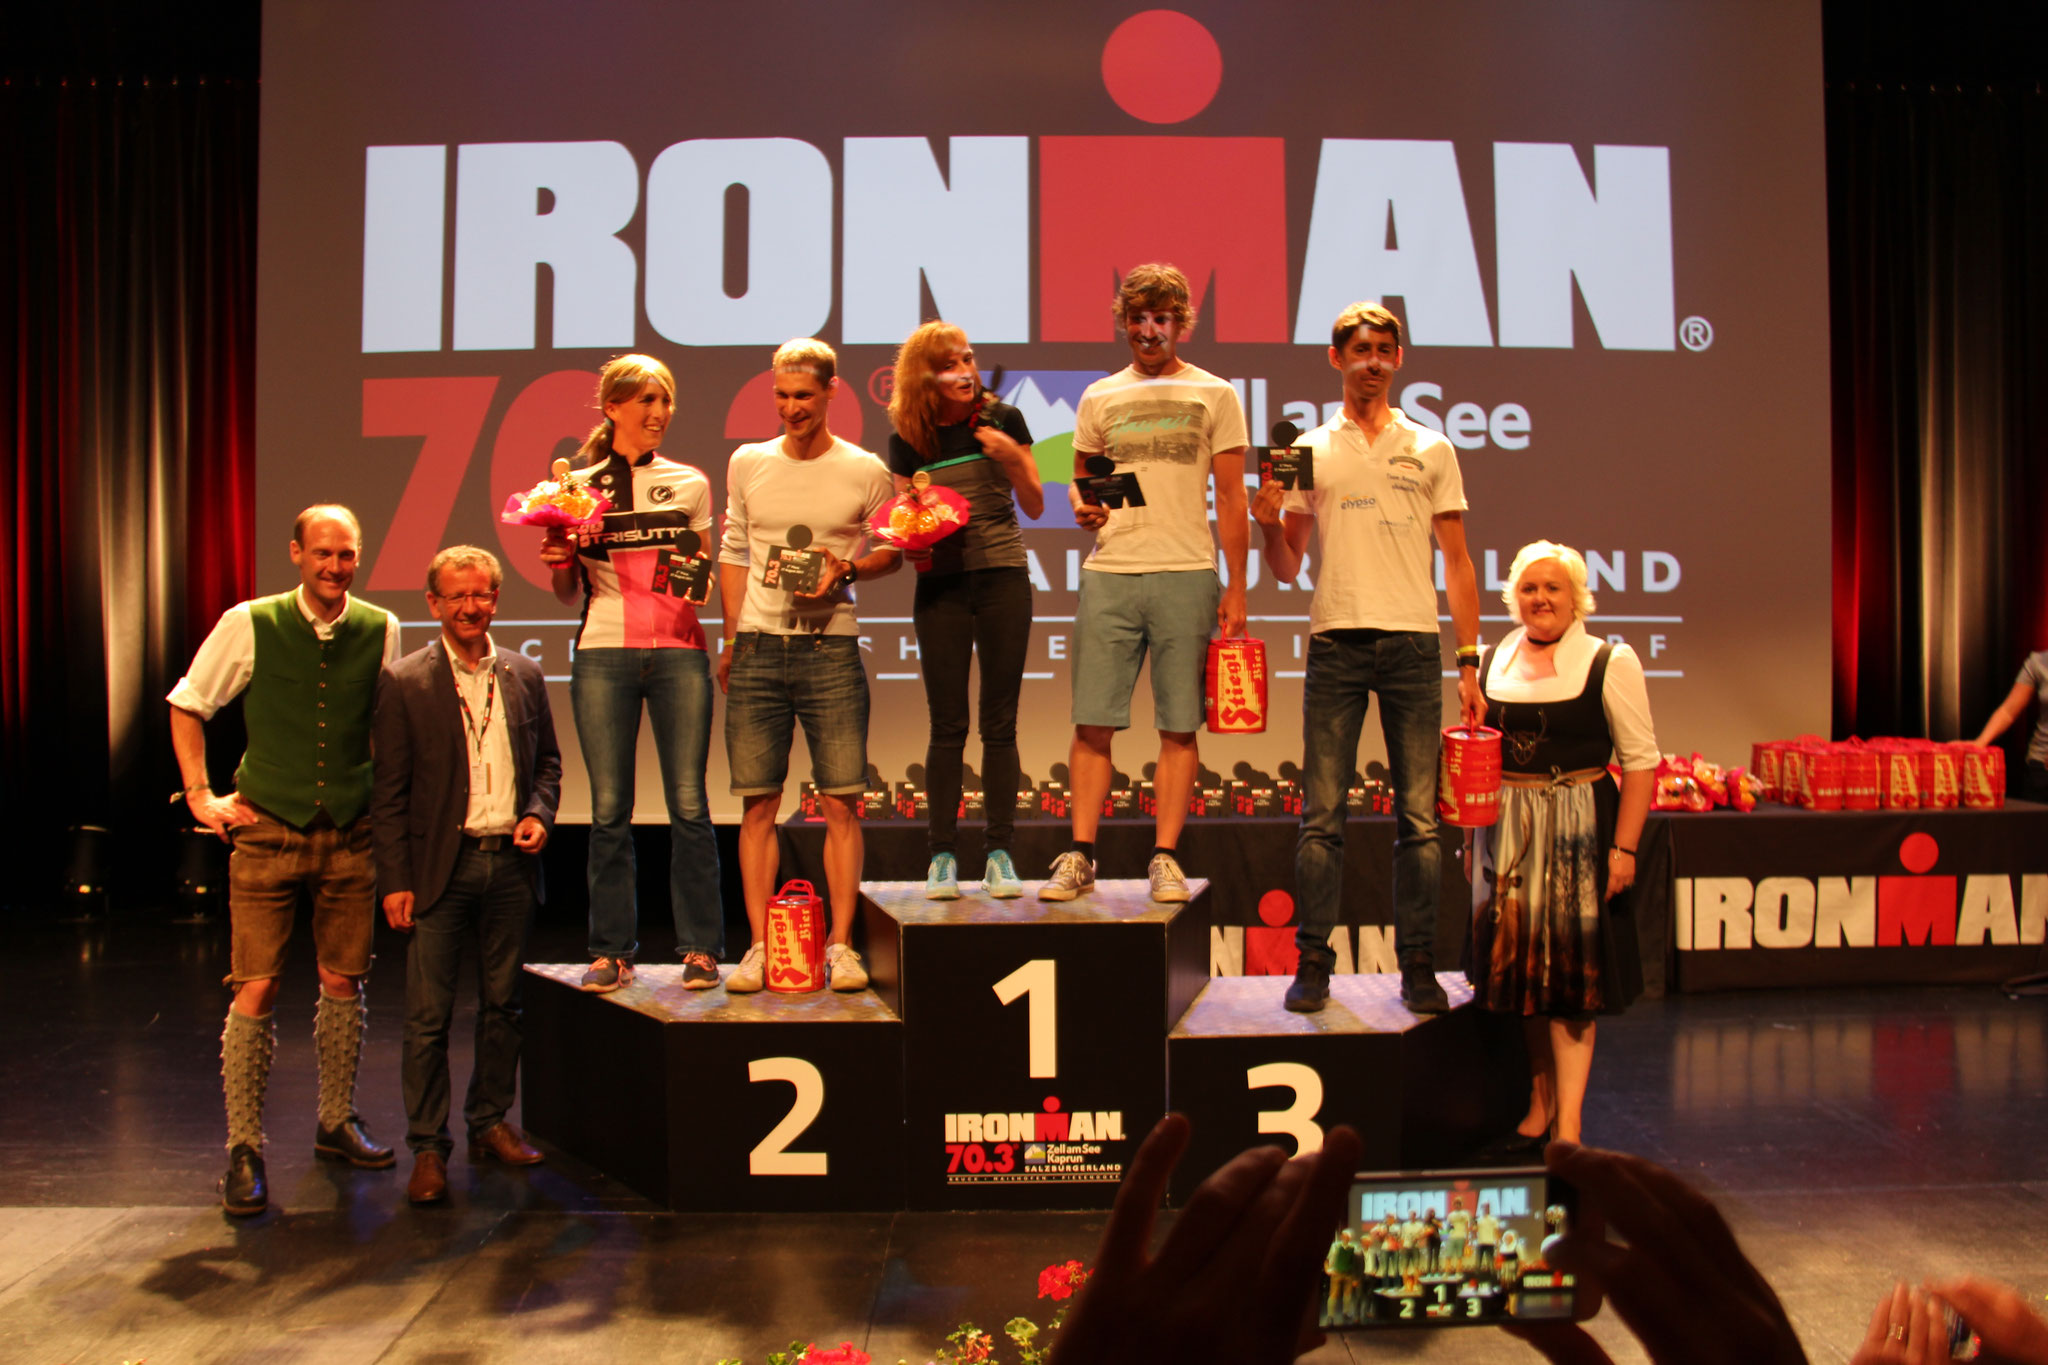 Ironman 70.3 Zell am See 2017 Altersklassenpodium